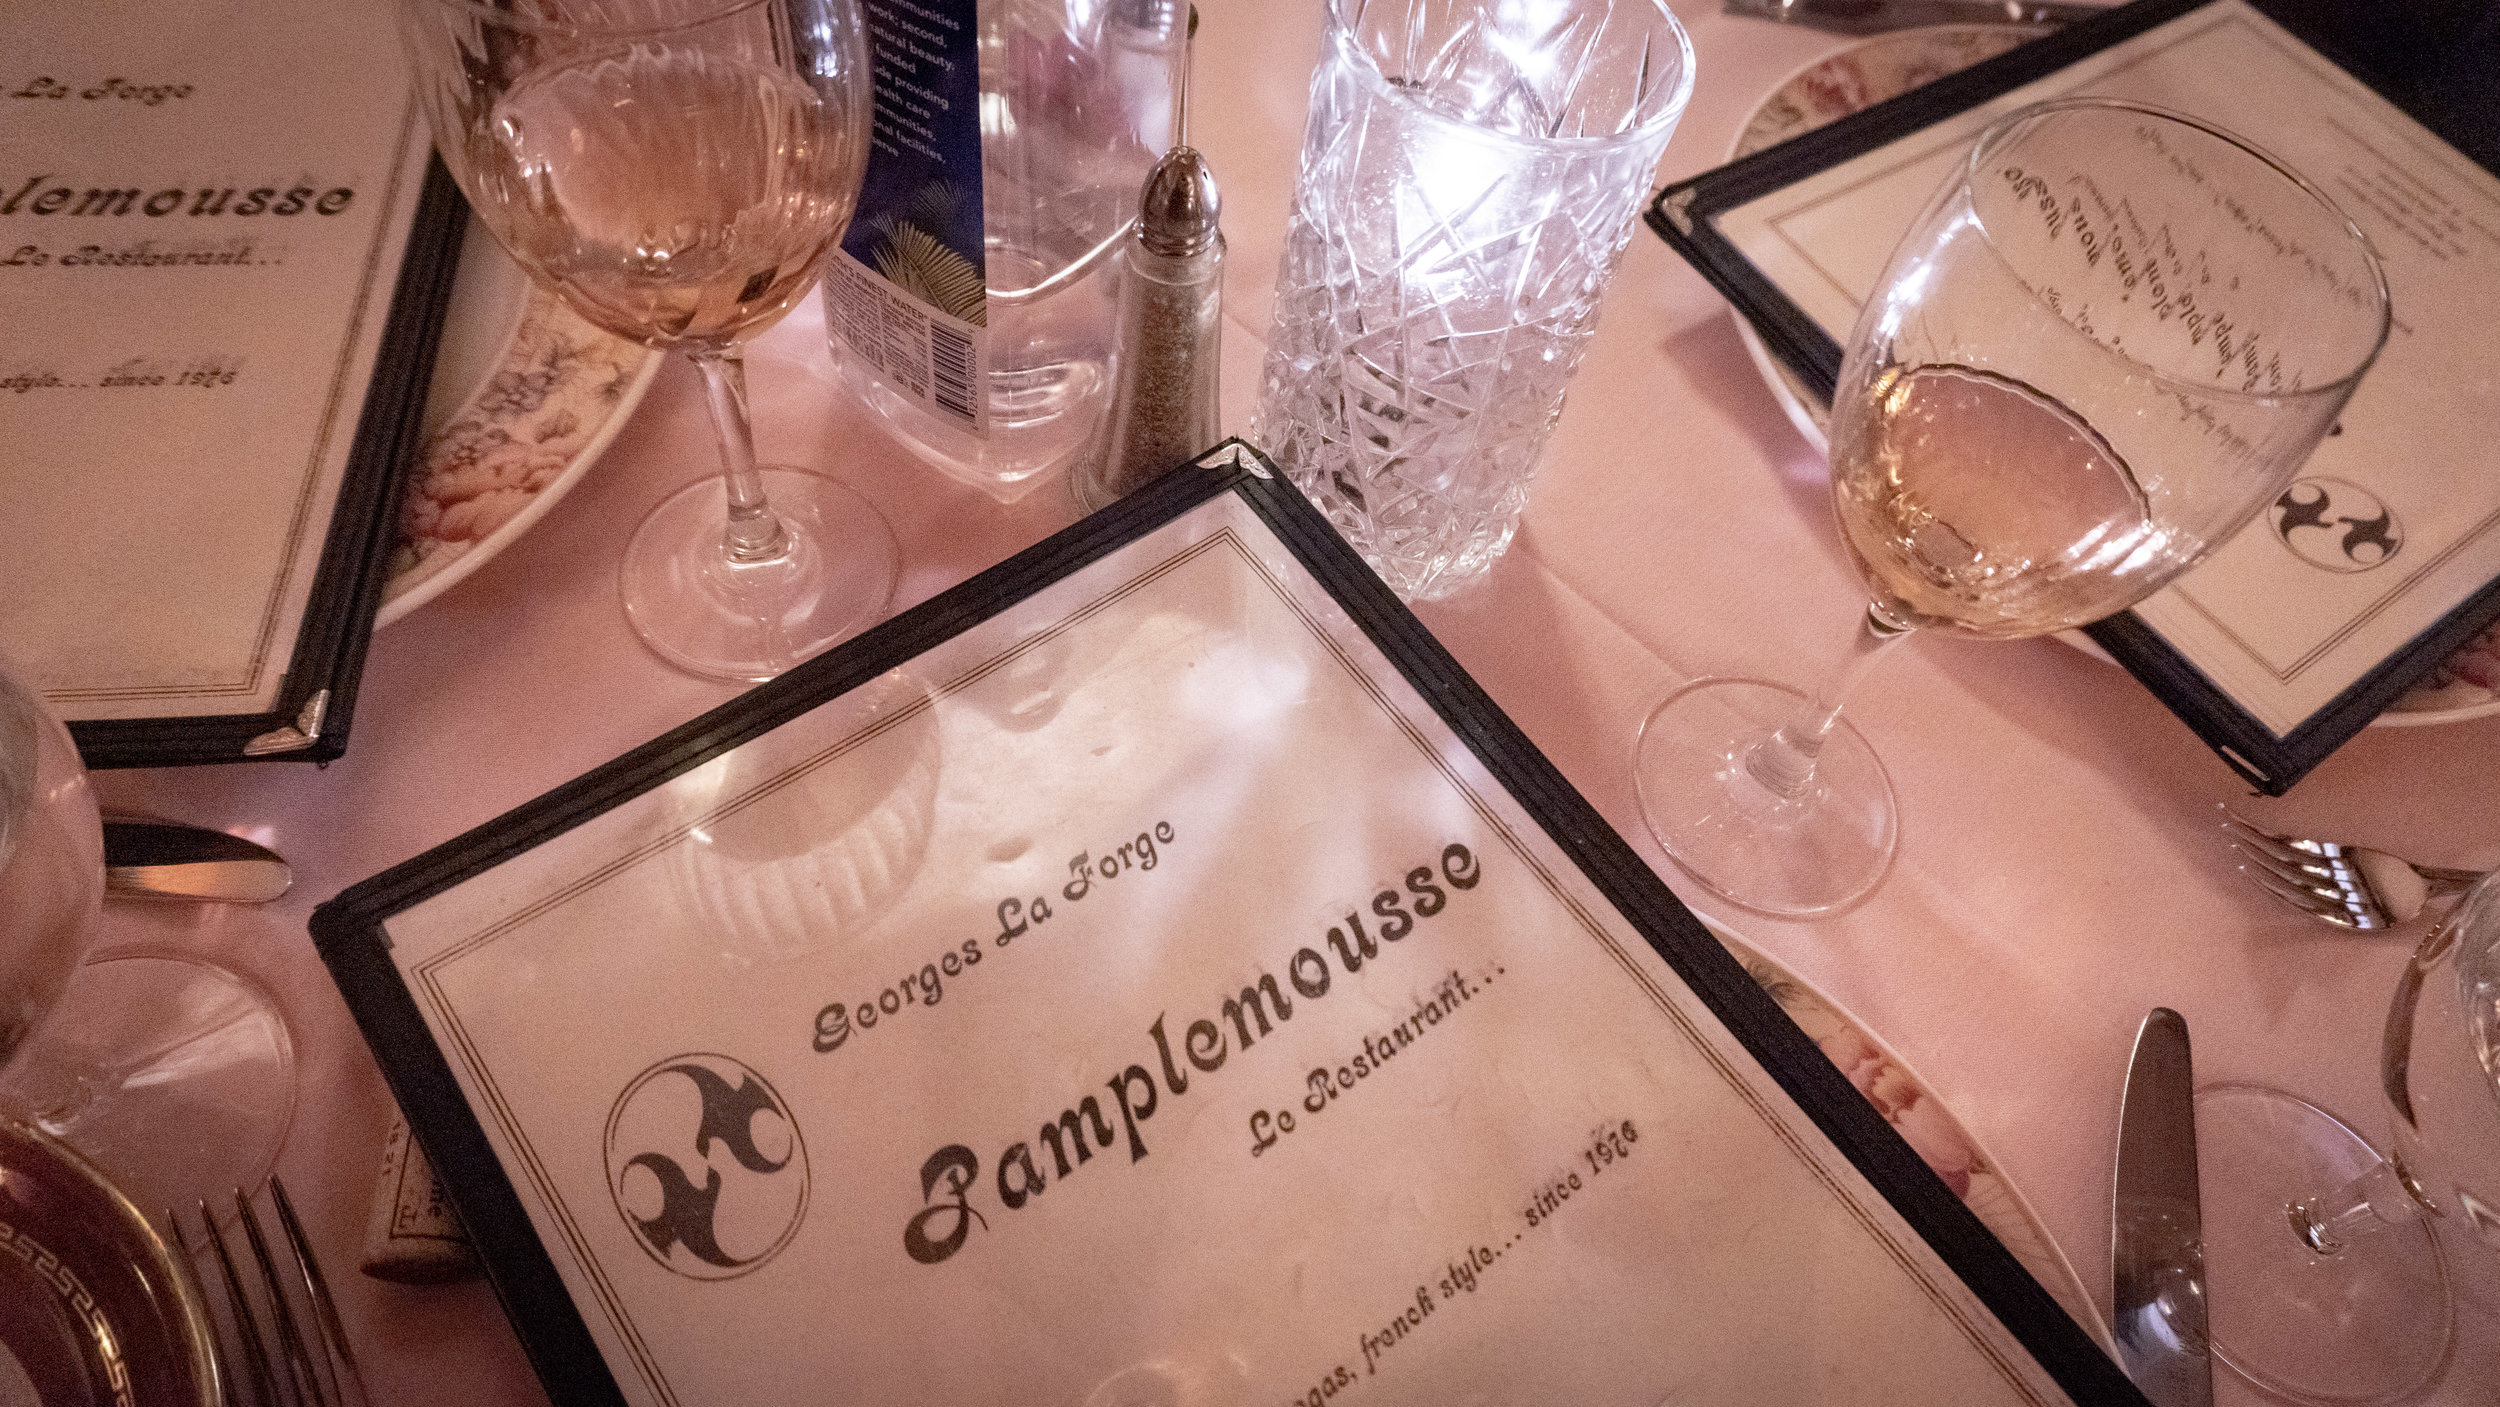 Here is your chance to be invited to special food and wine events at the Pamplemousse